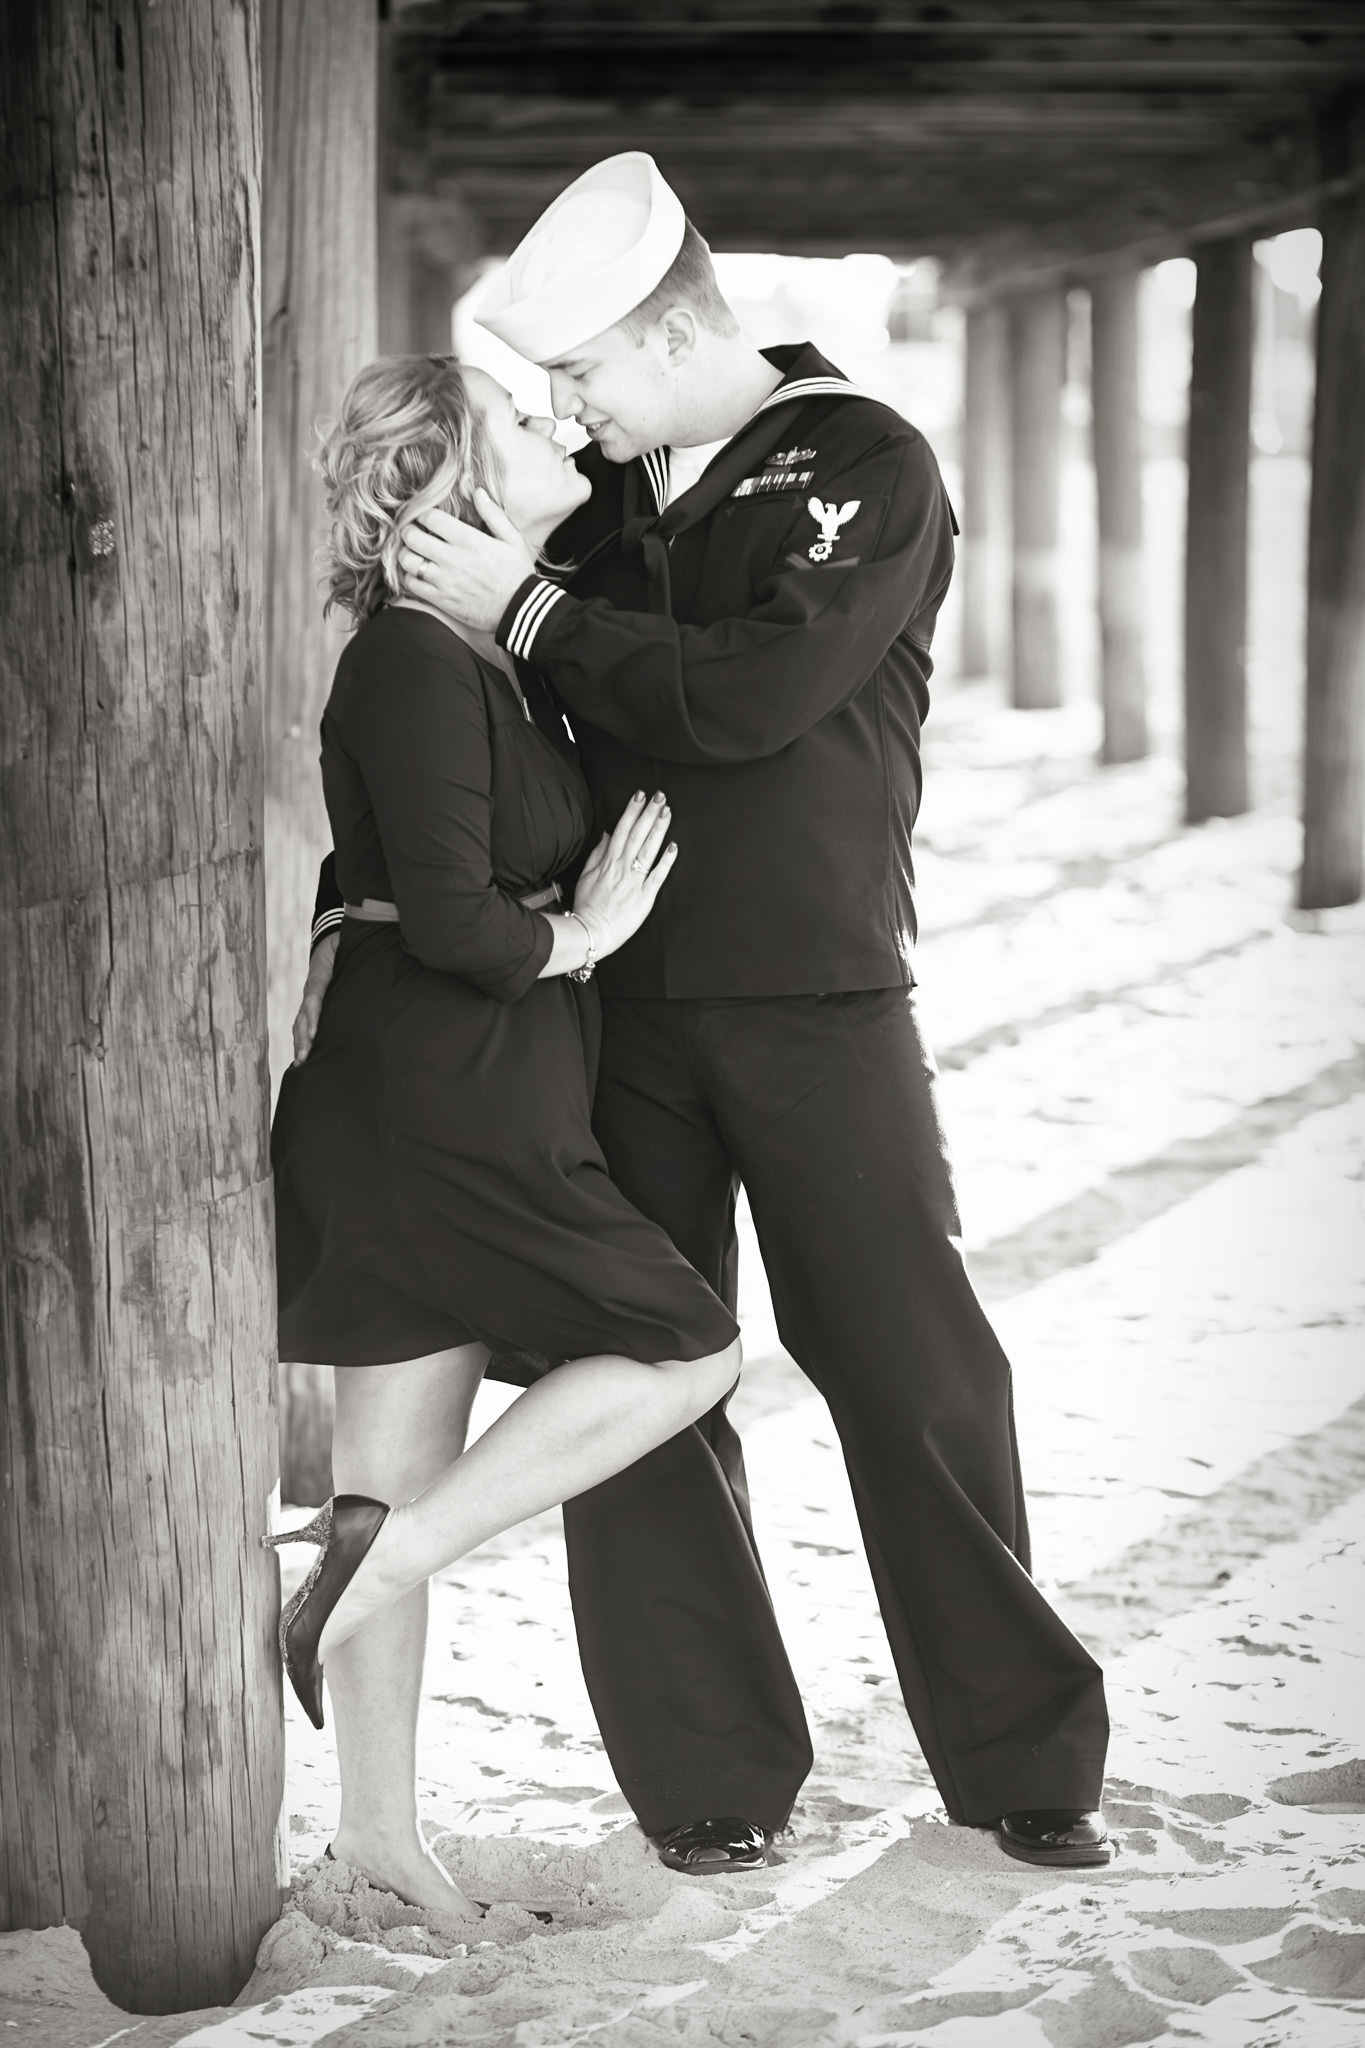 virginia-beach-pier-engagement-portrait-photograph-huff.jpg